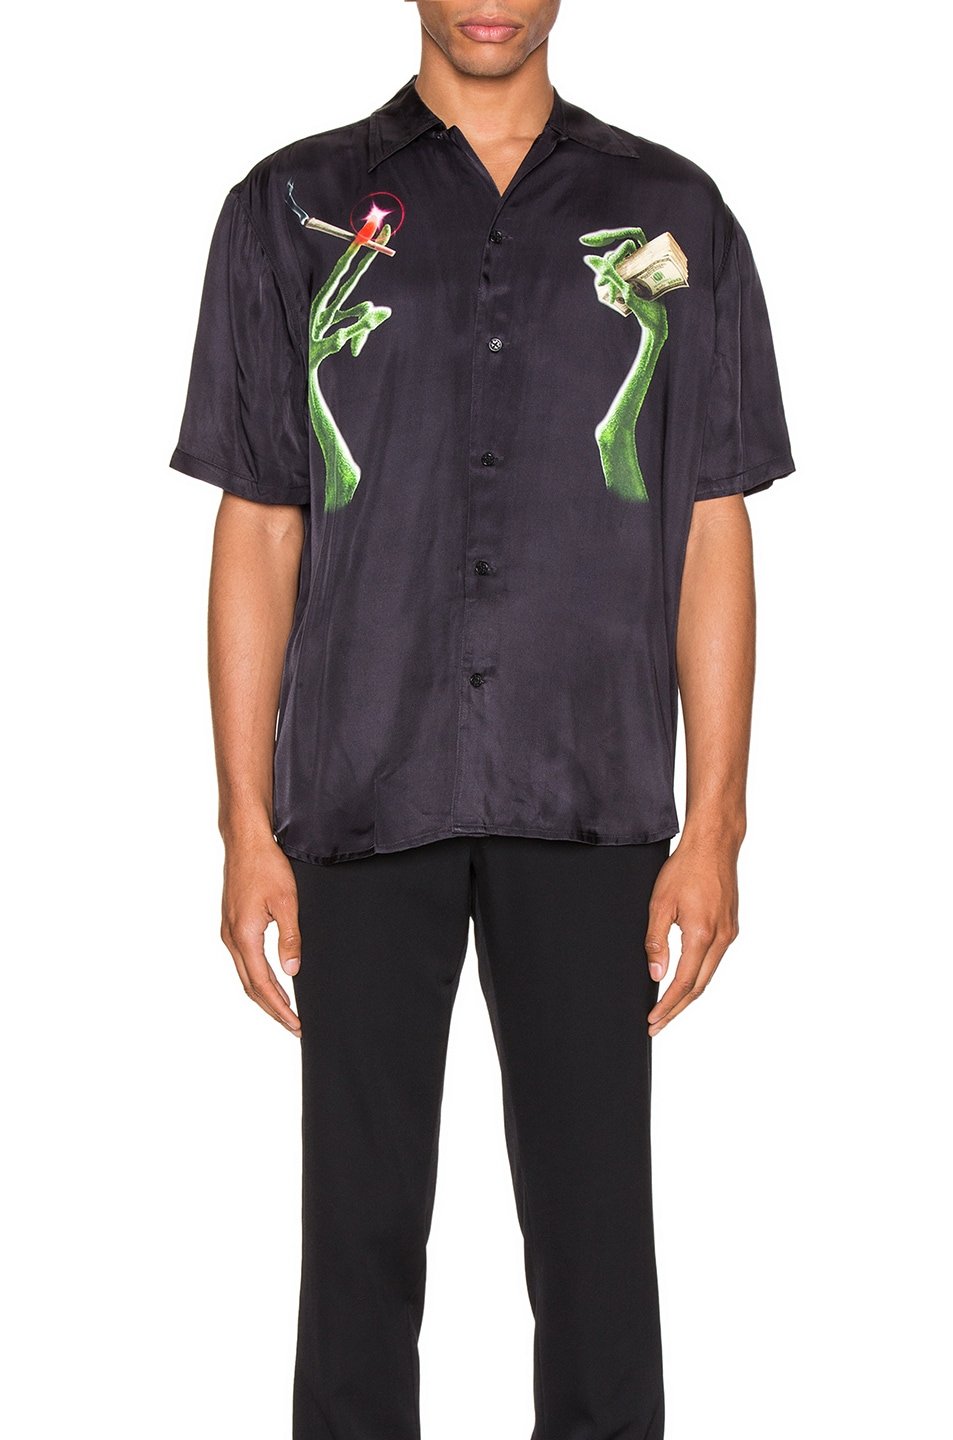 Image 1 of SSS World Corp Extrat Money Shirt in Black